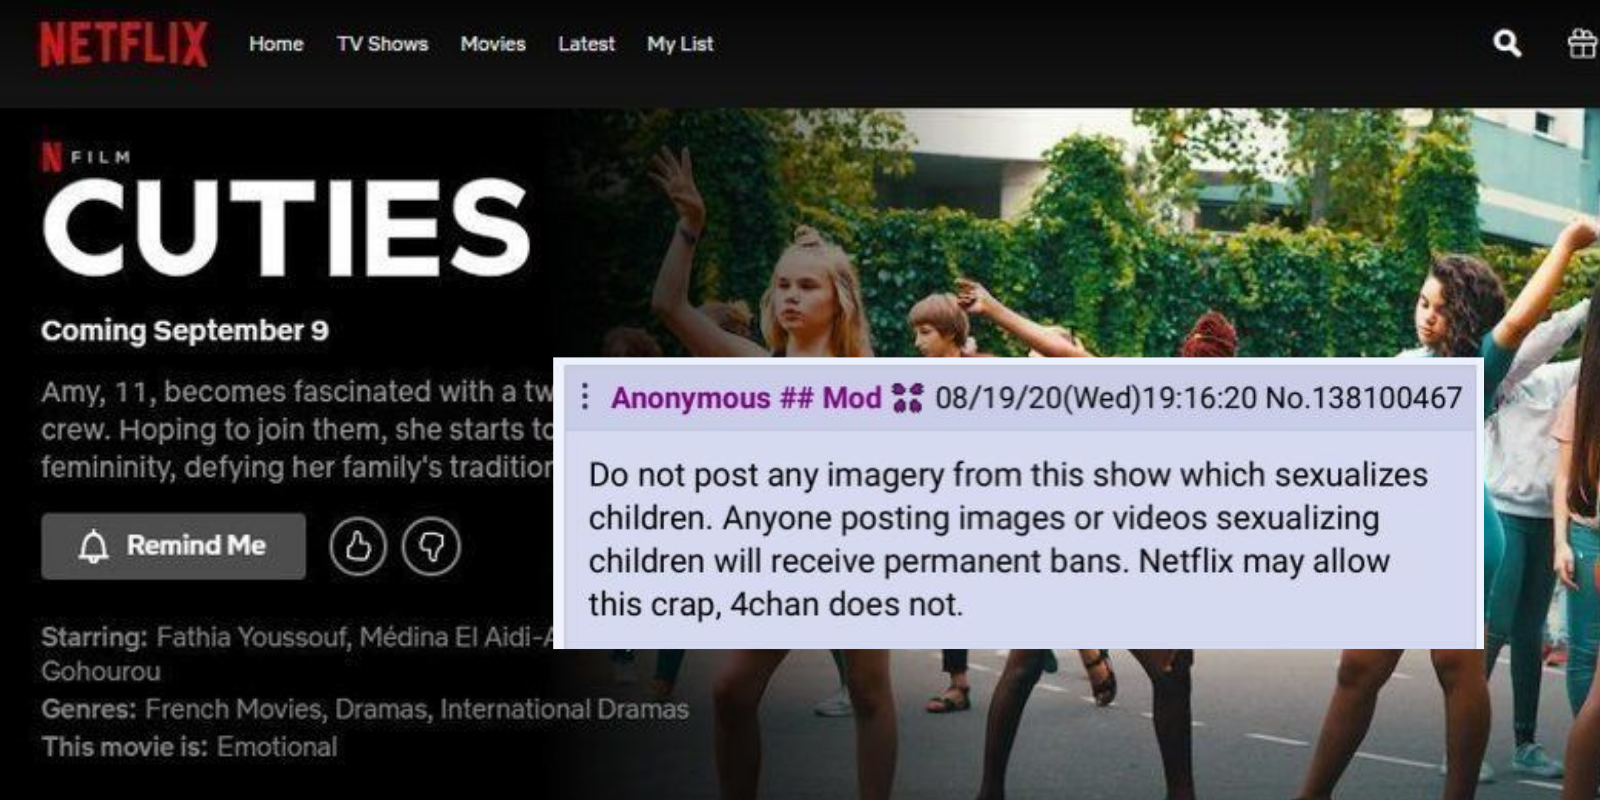 4Chan bans materials from 'pro-pedophilia' movie but Netflix does not